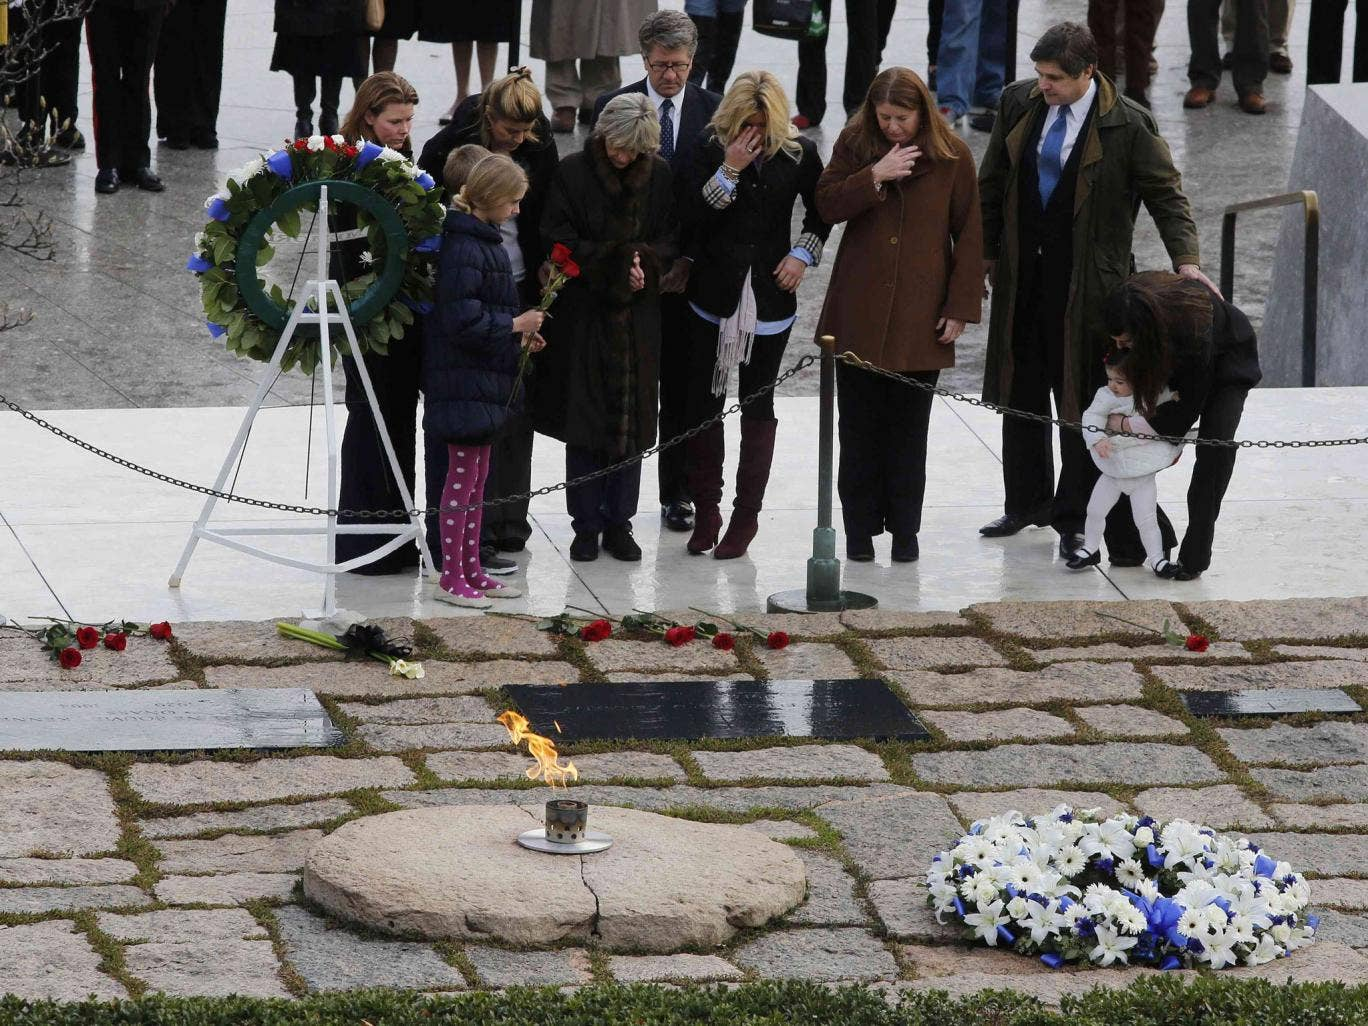 Members of the Kennedy family pay their respects at Arlington National Cemetery to mark the 50th anniversary of the assassination of former U.S. President John F. Kennedy